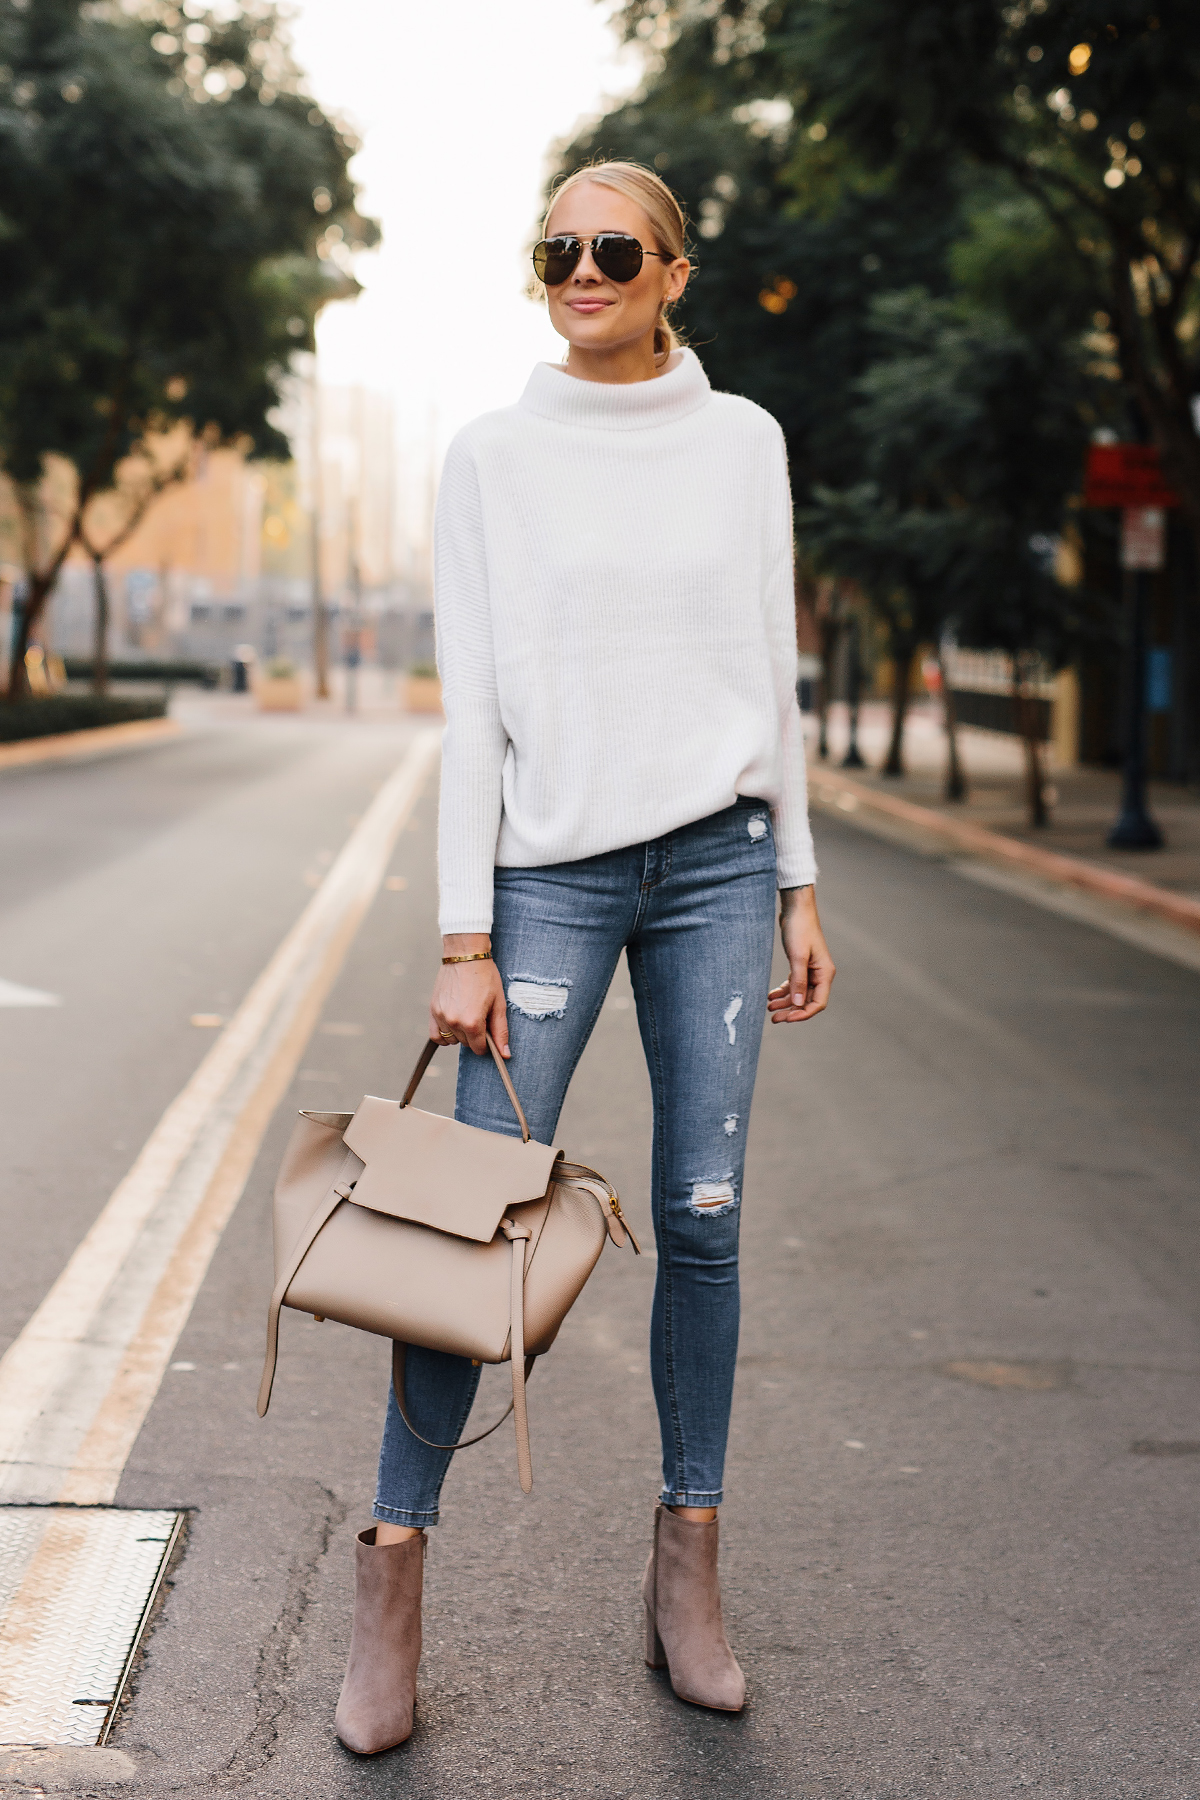 Blonde Woman Wearing White Sweater Denim Ripped Skinny Jeans Steve Madden Taupe Booties Outfit Celine Mini Belt Bag Fashion Jackson San Diego Fashion Blogger Street Style